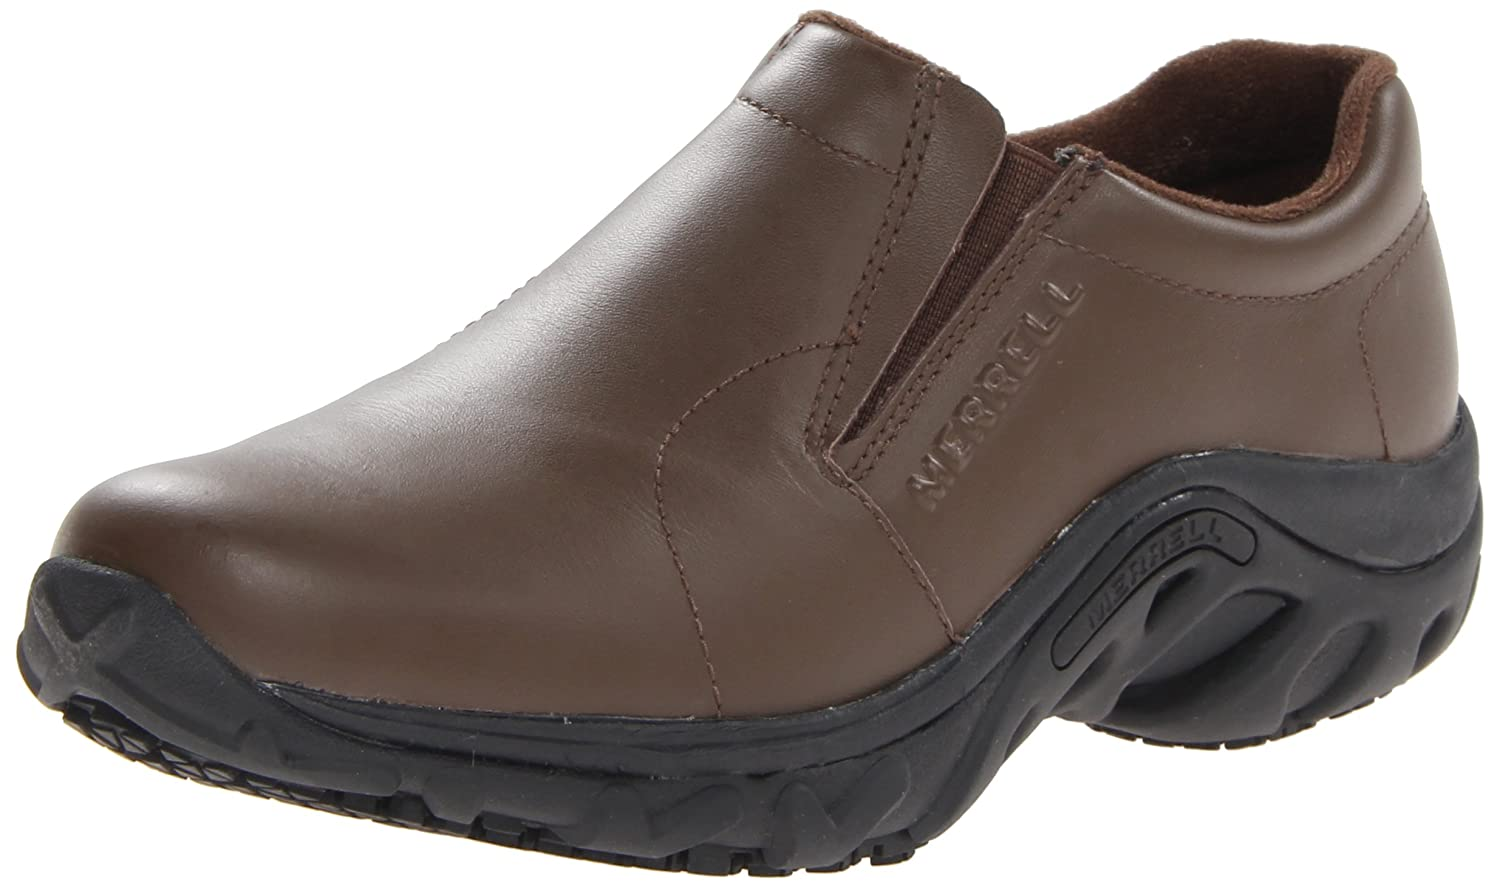 861890a8 Amazon.com: Merrell Women's Jungle Moc Pro Grip Slip-Resistant Work ...